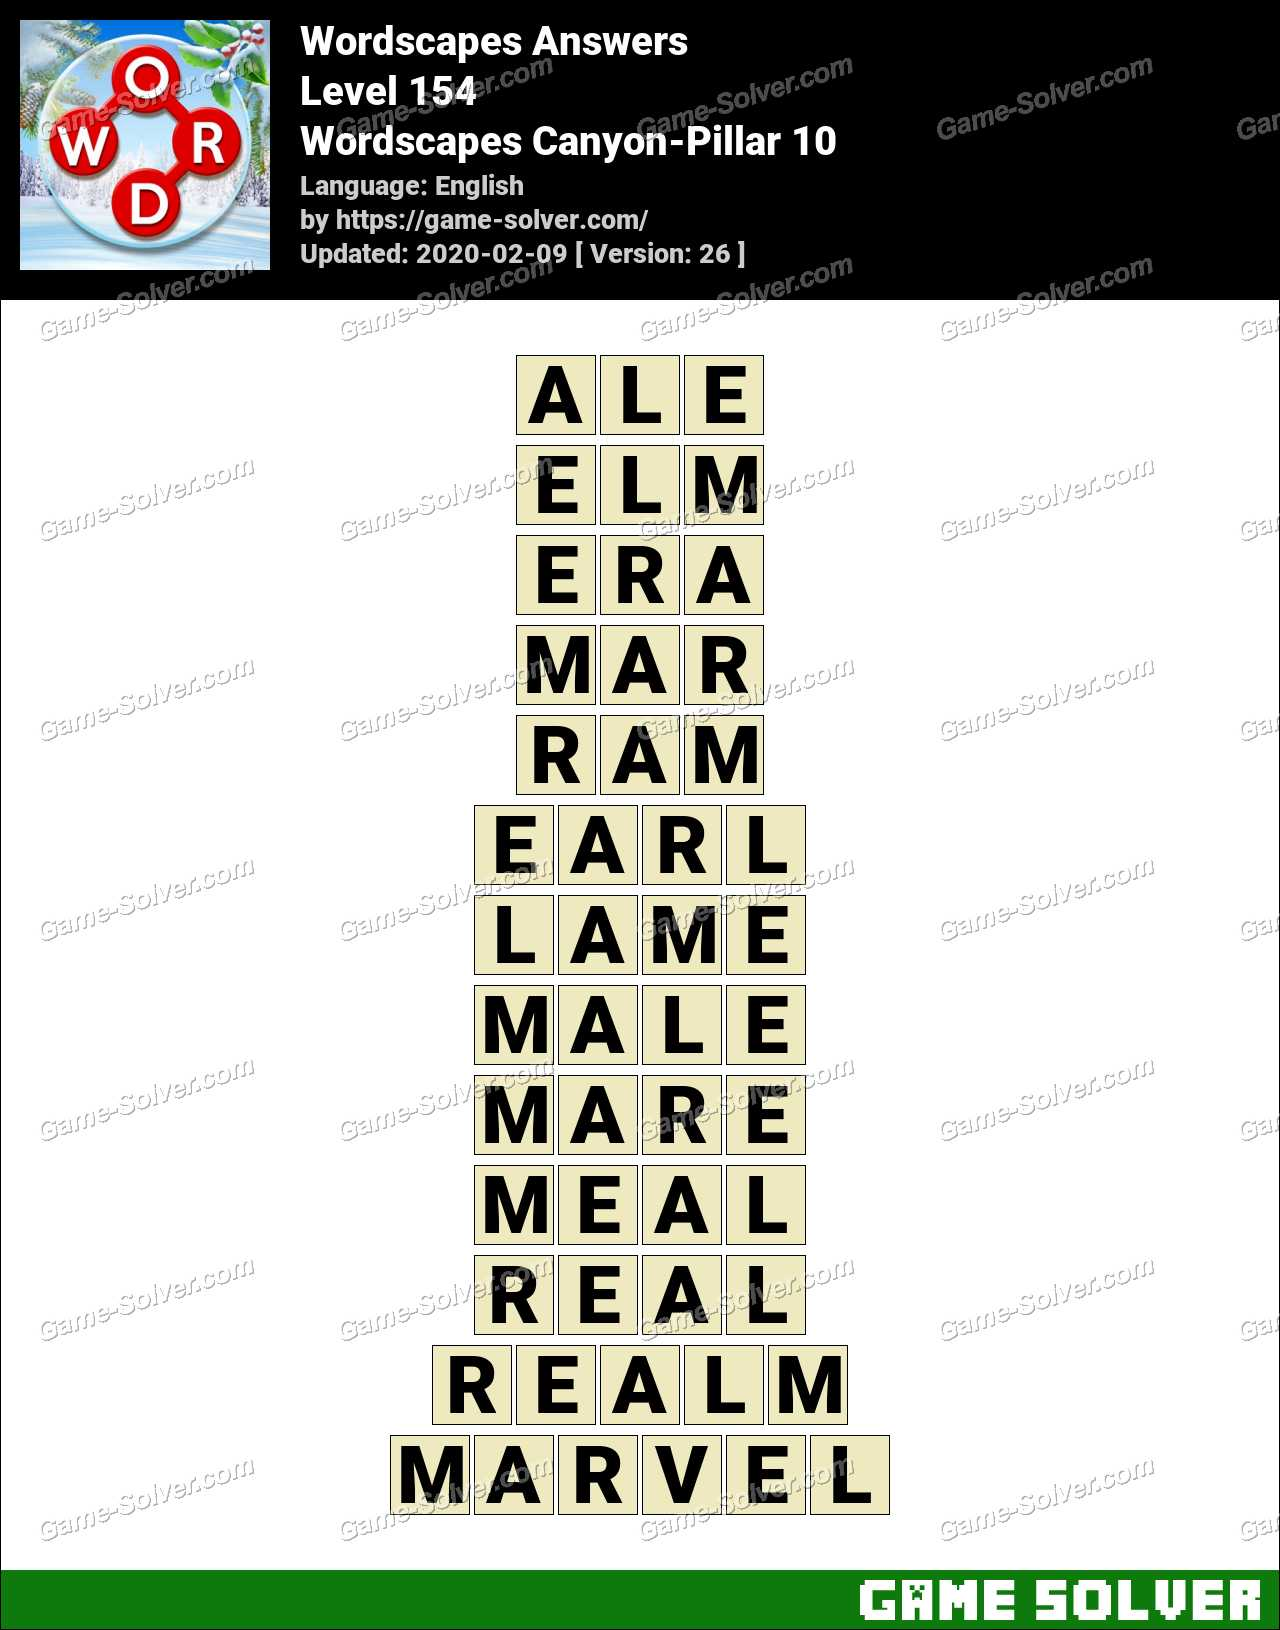 Wordscapes Canyon Pillar 10 Answers Game Solver